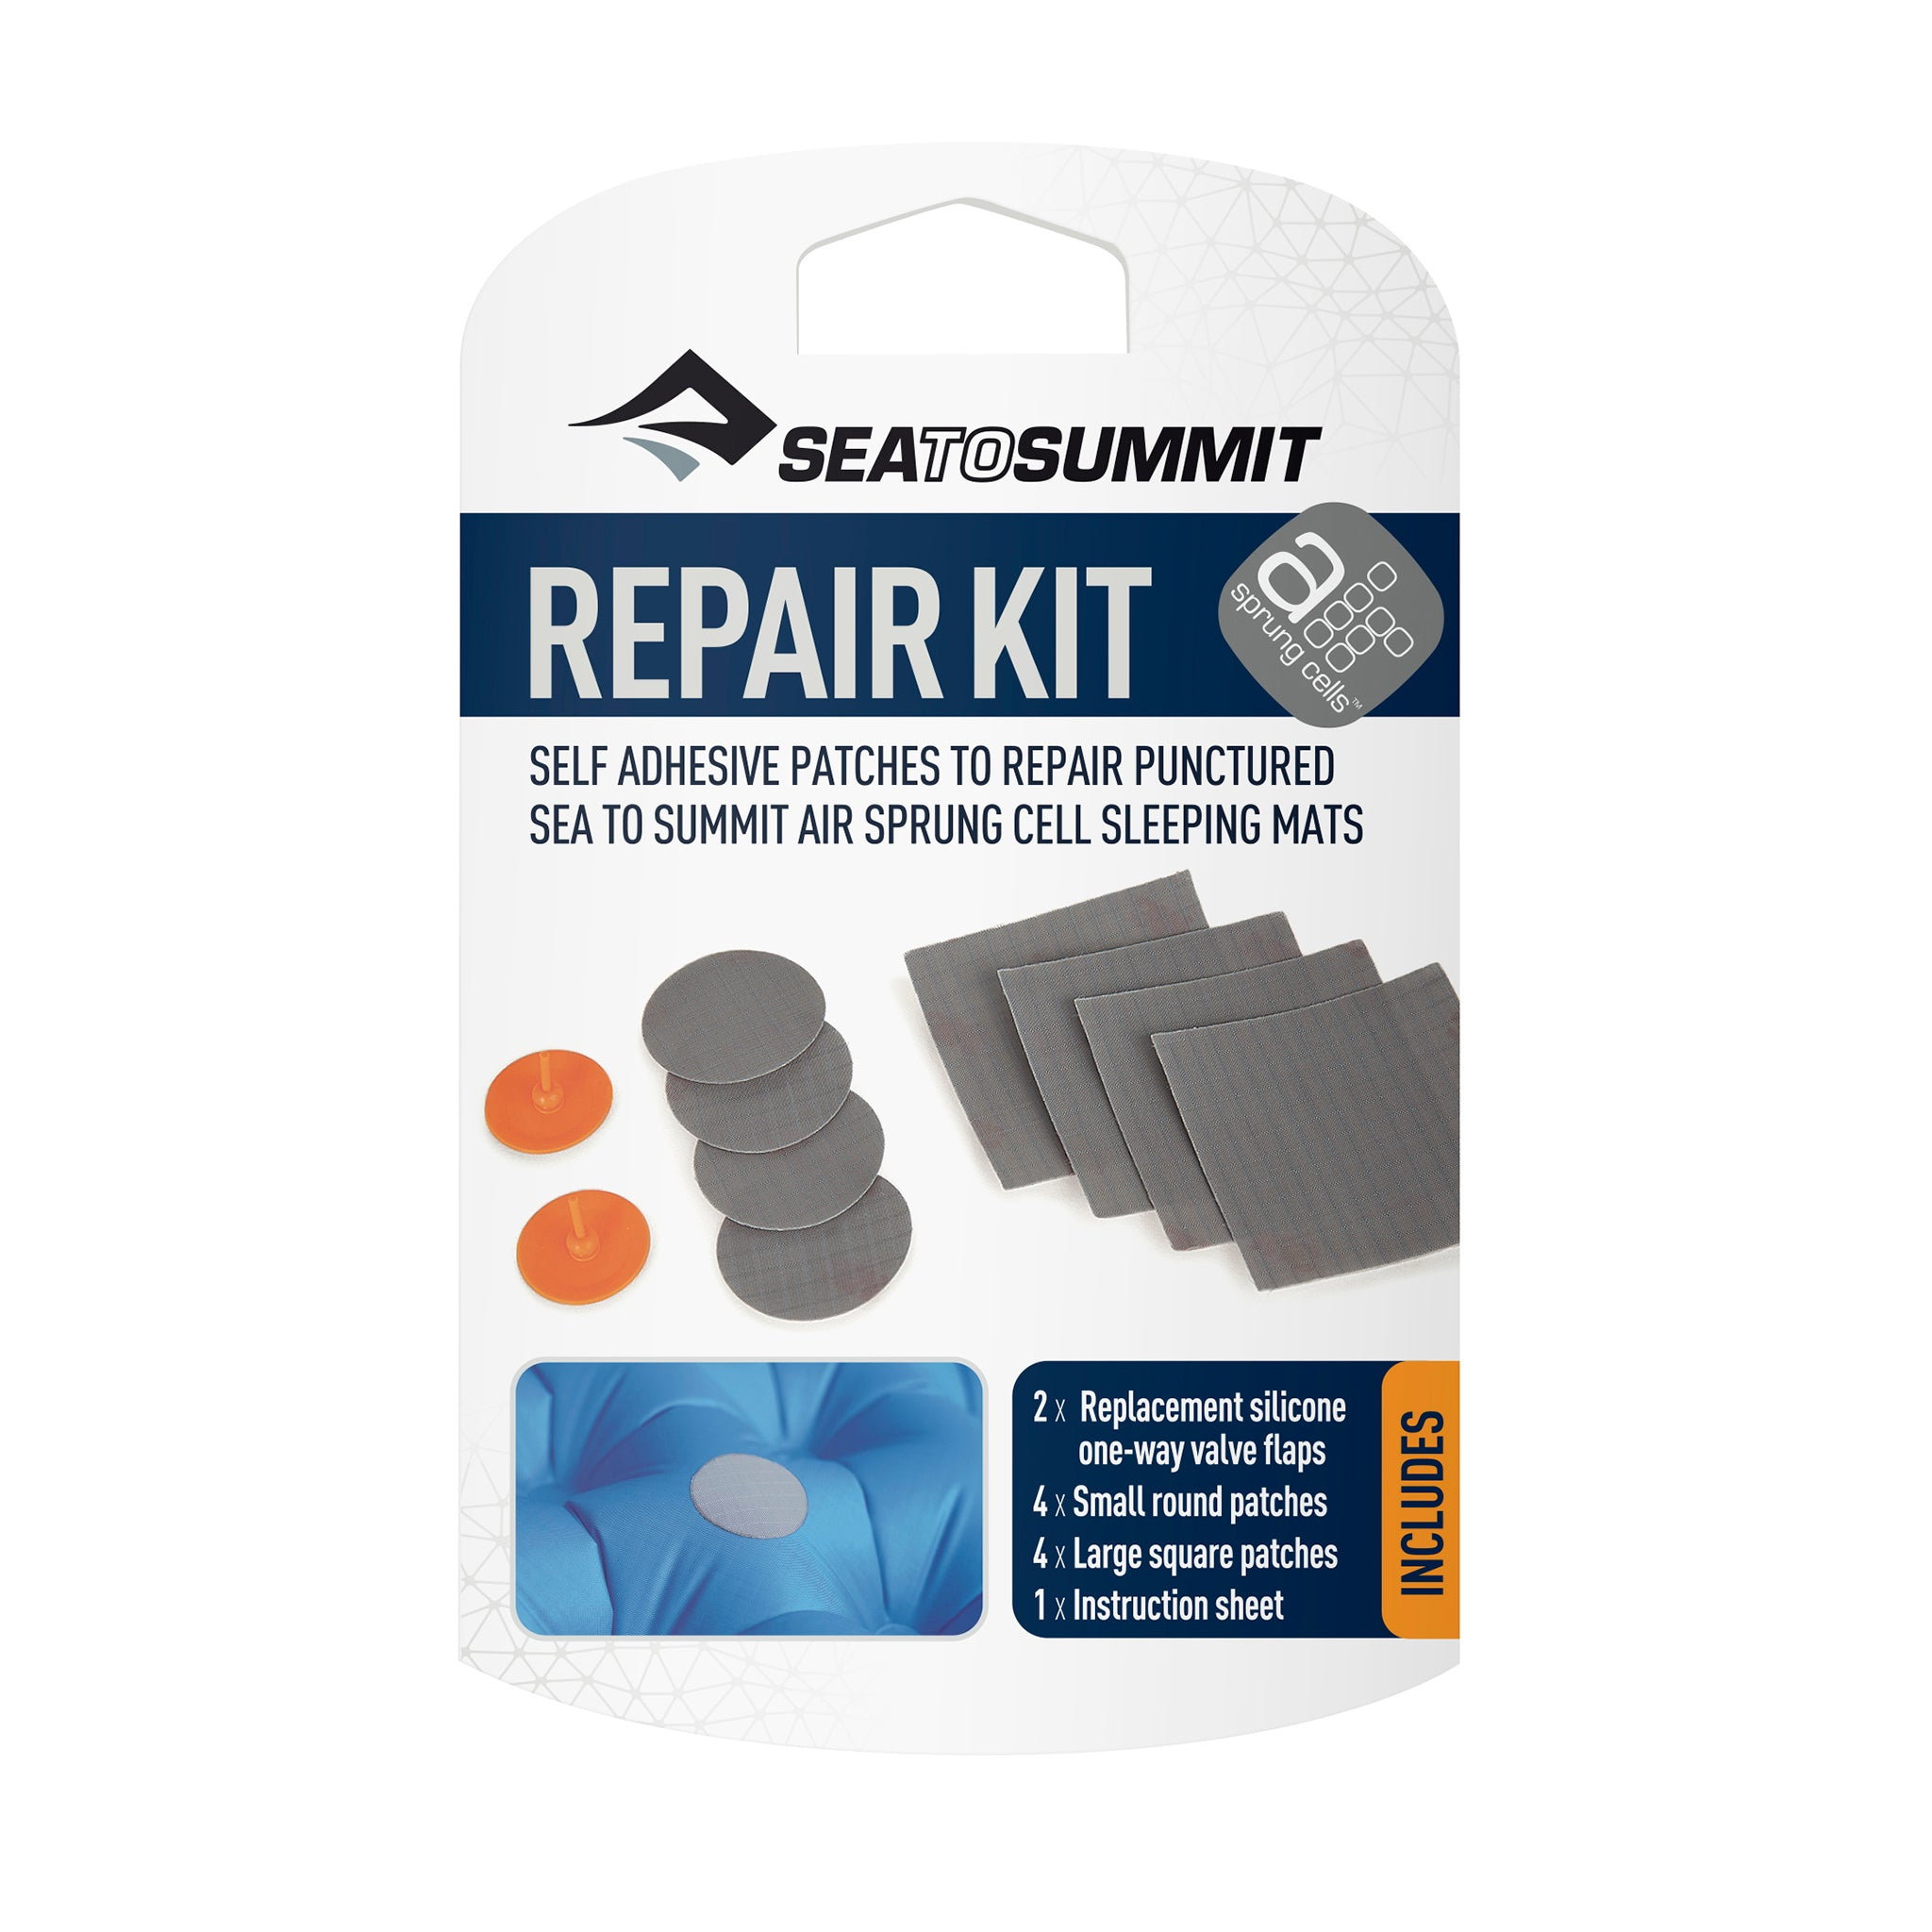 Sea to Summit sleeping mat repair kit.